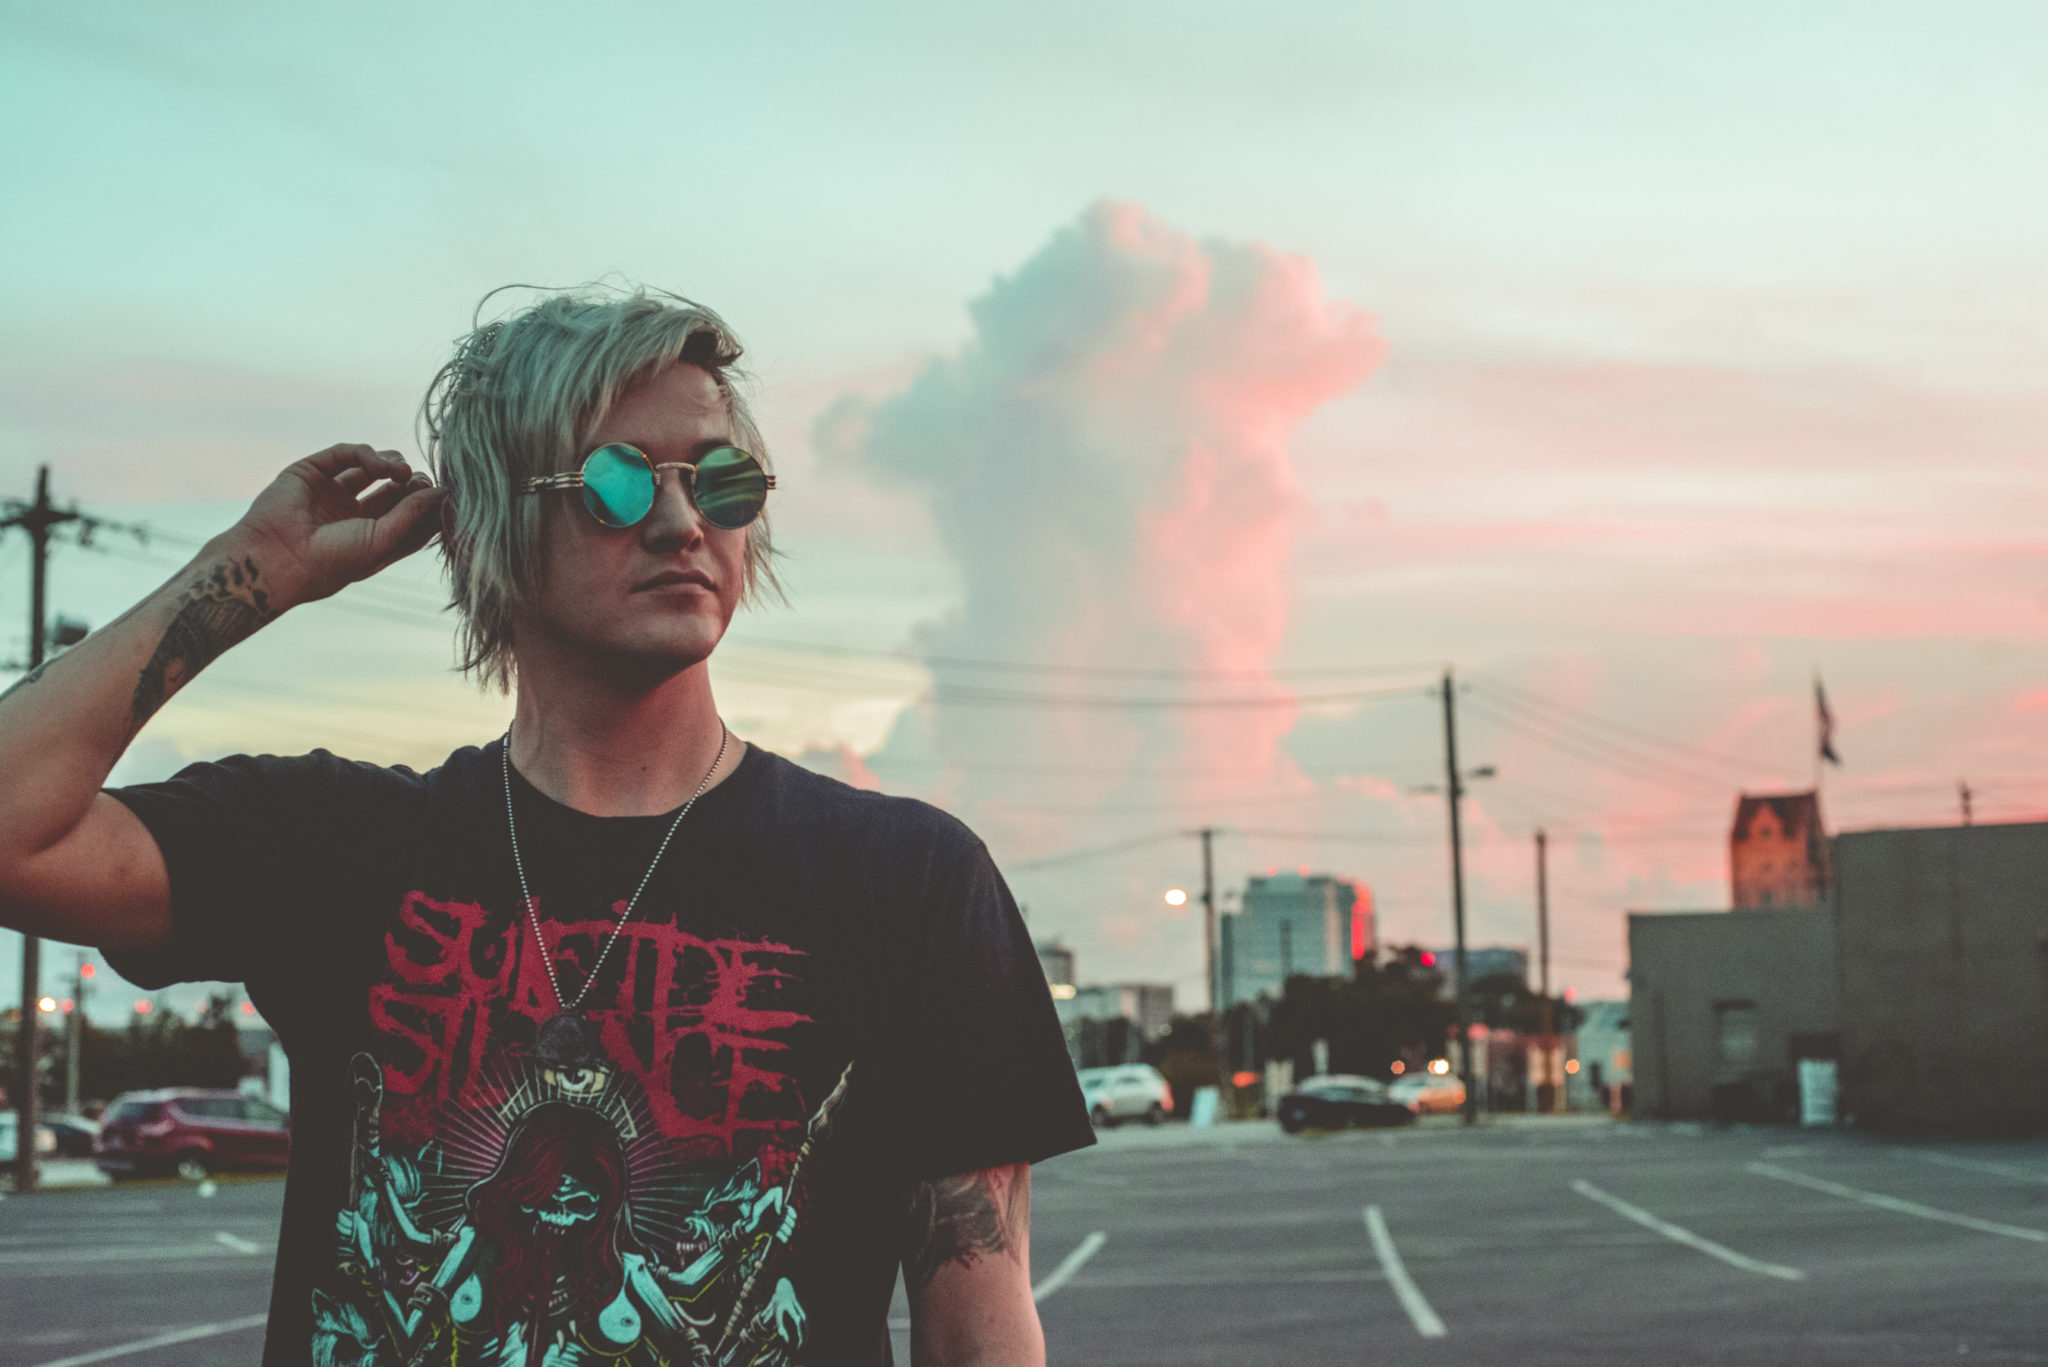 Going the extra mile: An interview with Ghastly